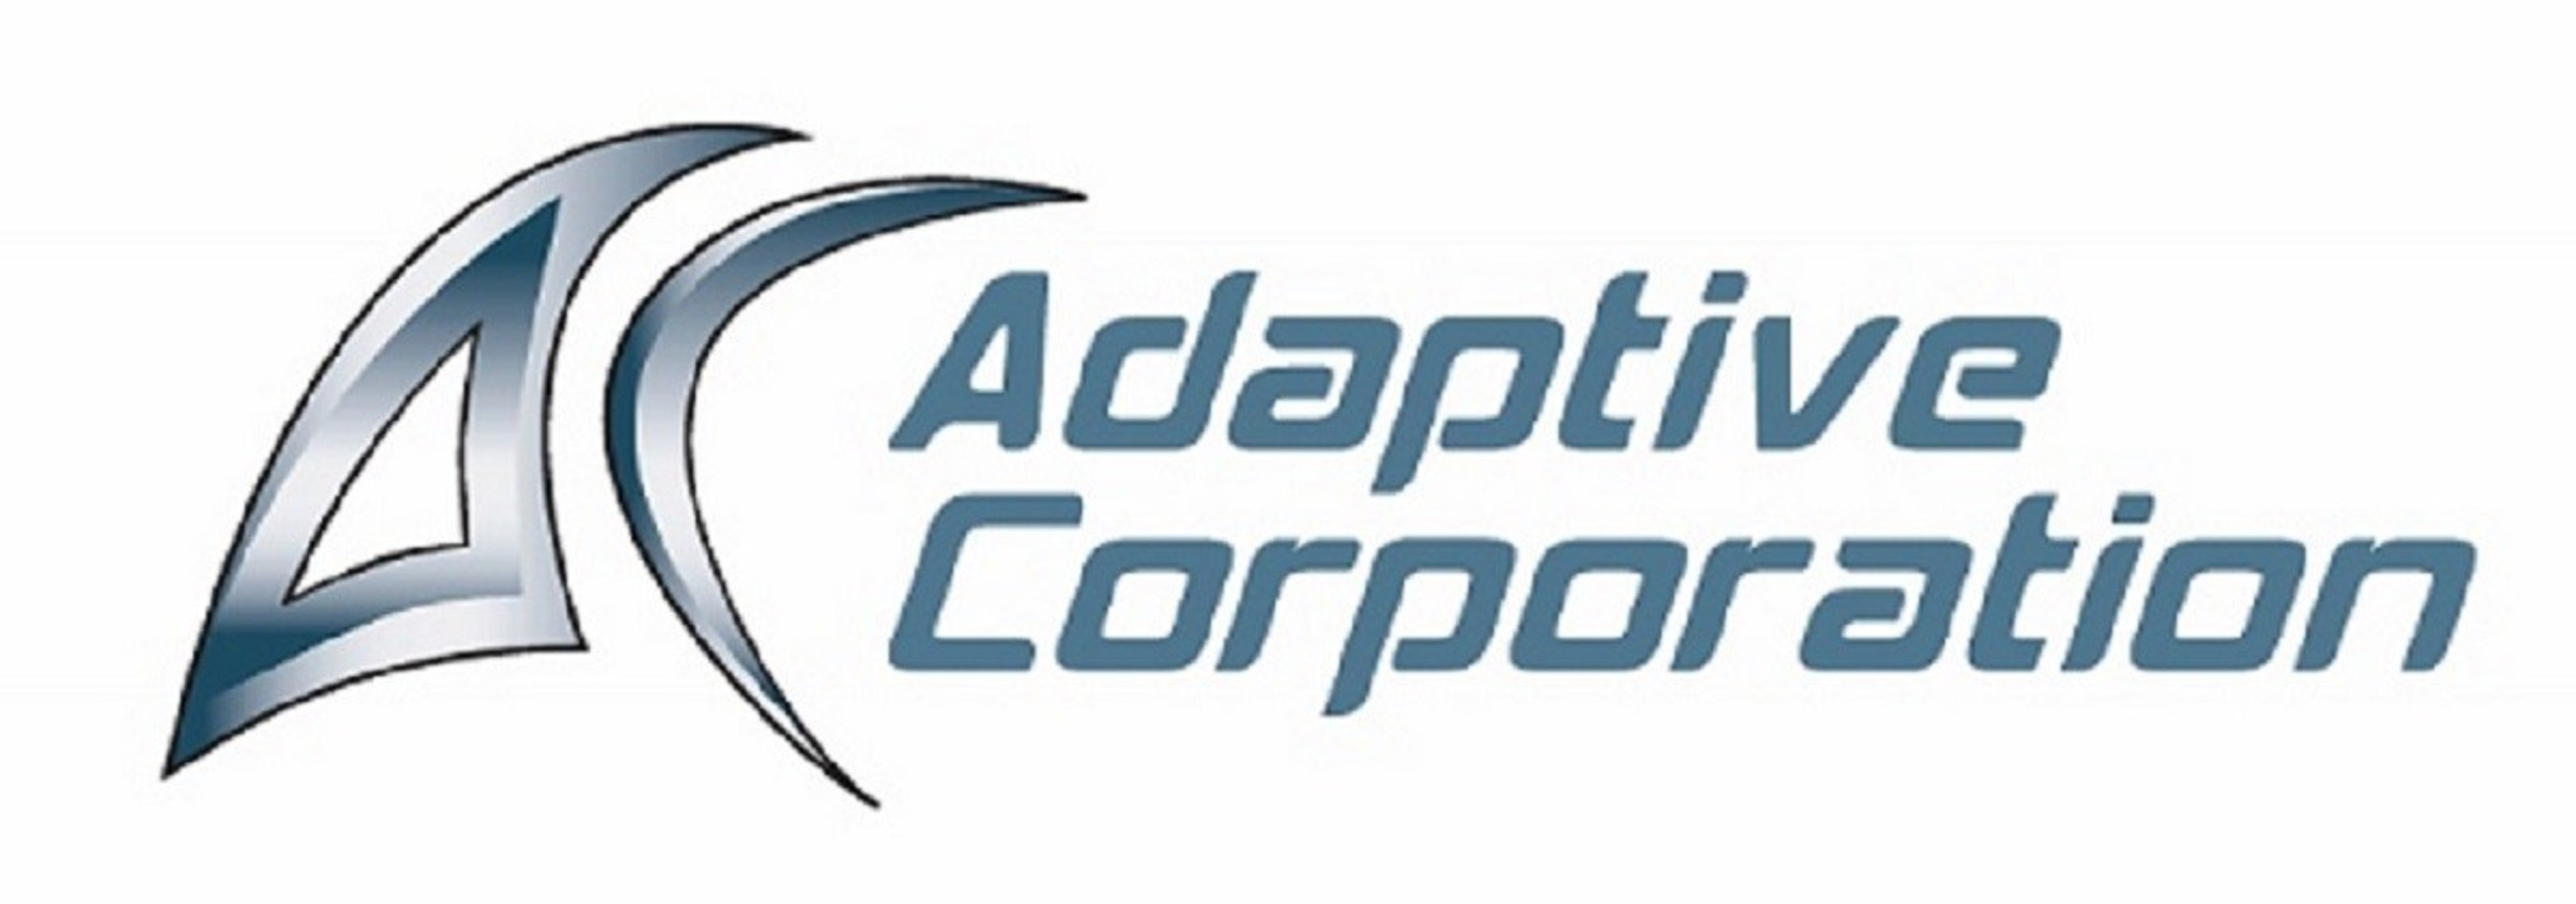 Adaptive Corporation Adds Digital Product Development Expert Kevin Waugh to its Engineering Services Team